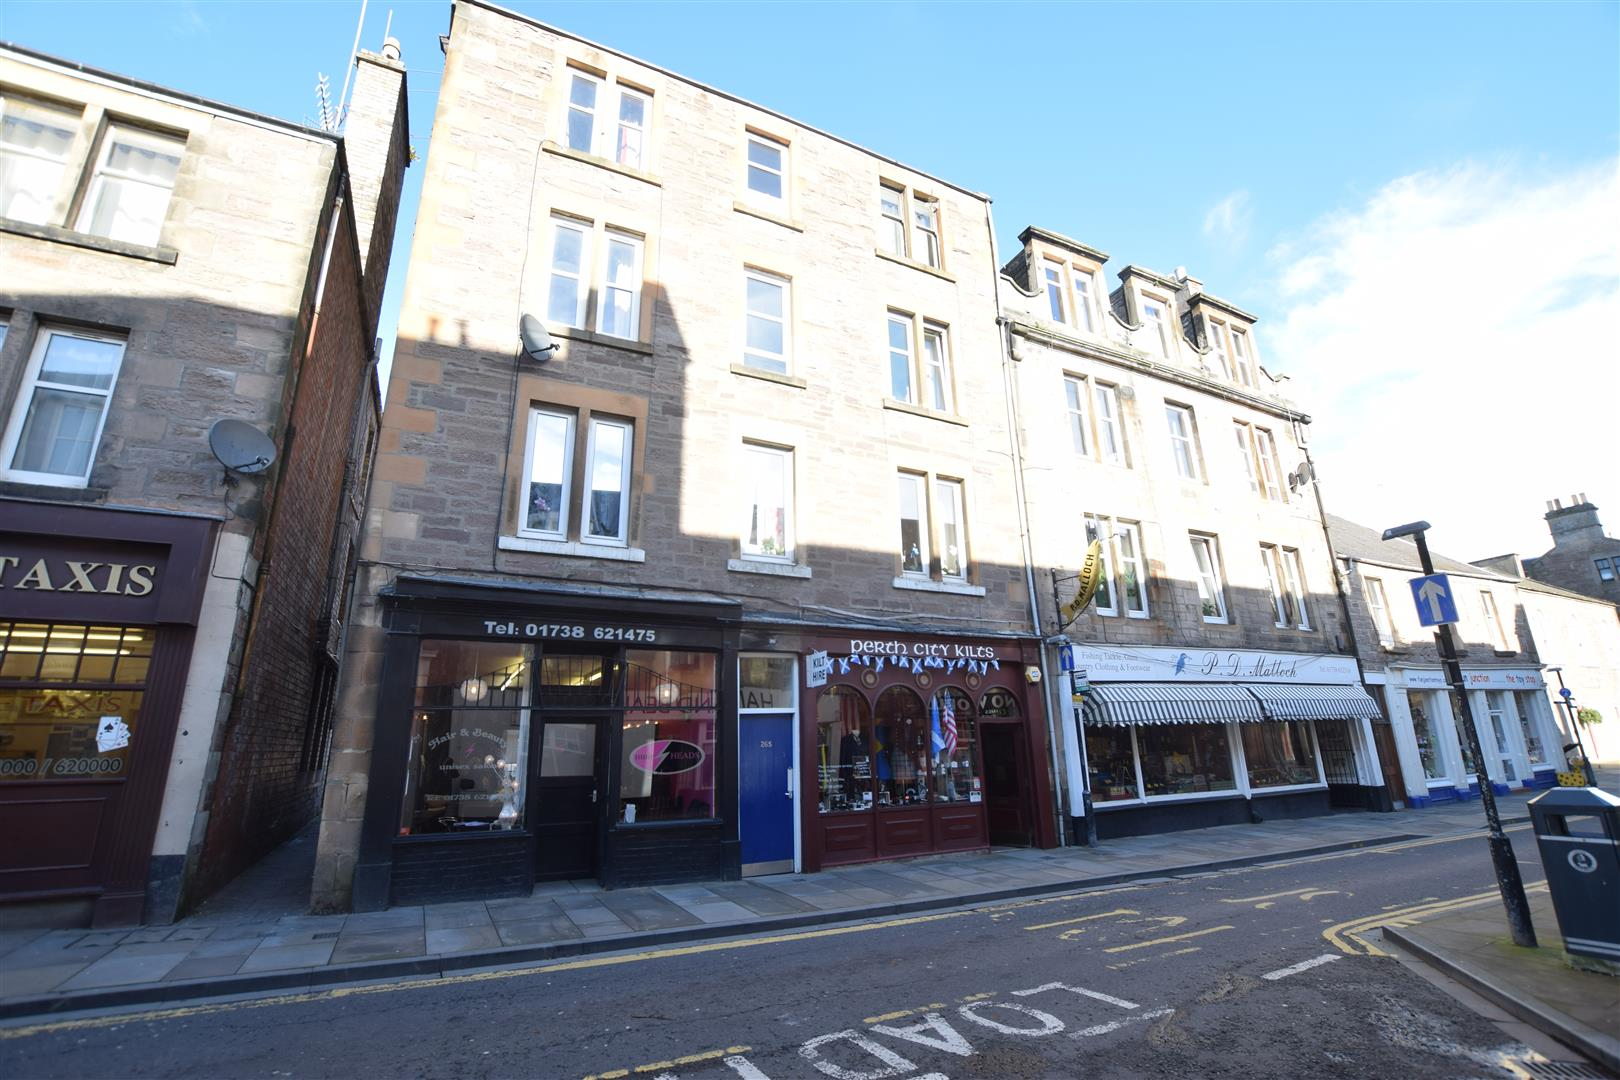 265c High Street, PERTH, Perthshire, PH1 5QN, UK